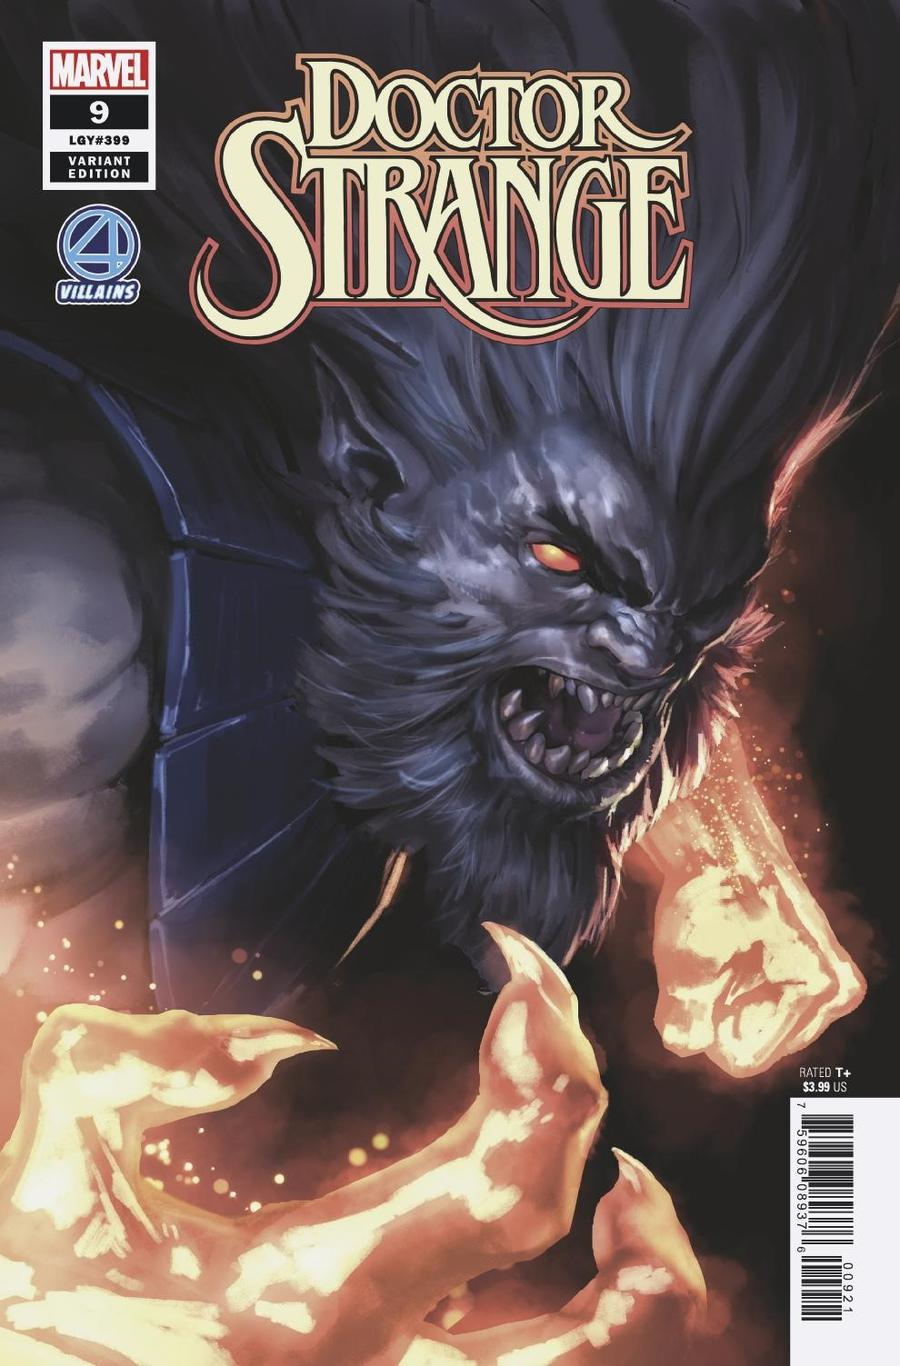 Doctor Strange Vol 5 #9 Cover B Variant Marko Djurdjevic Fantastic Four Villains Cover